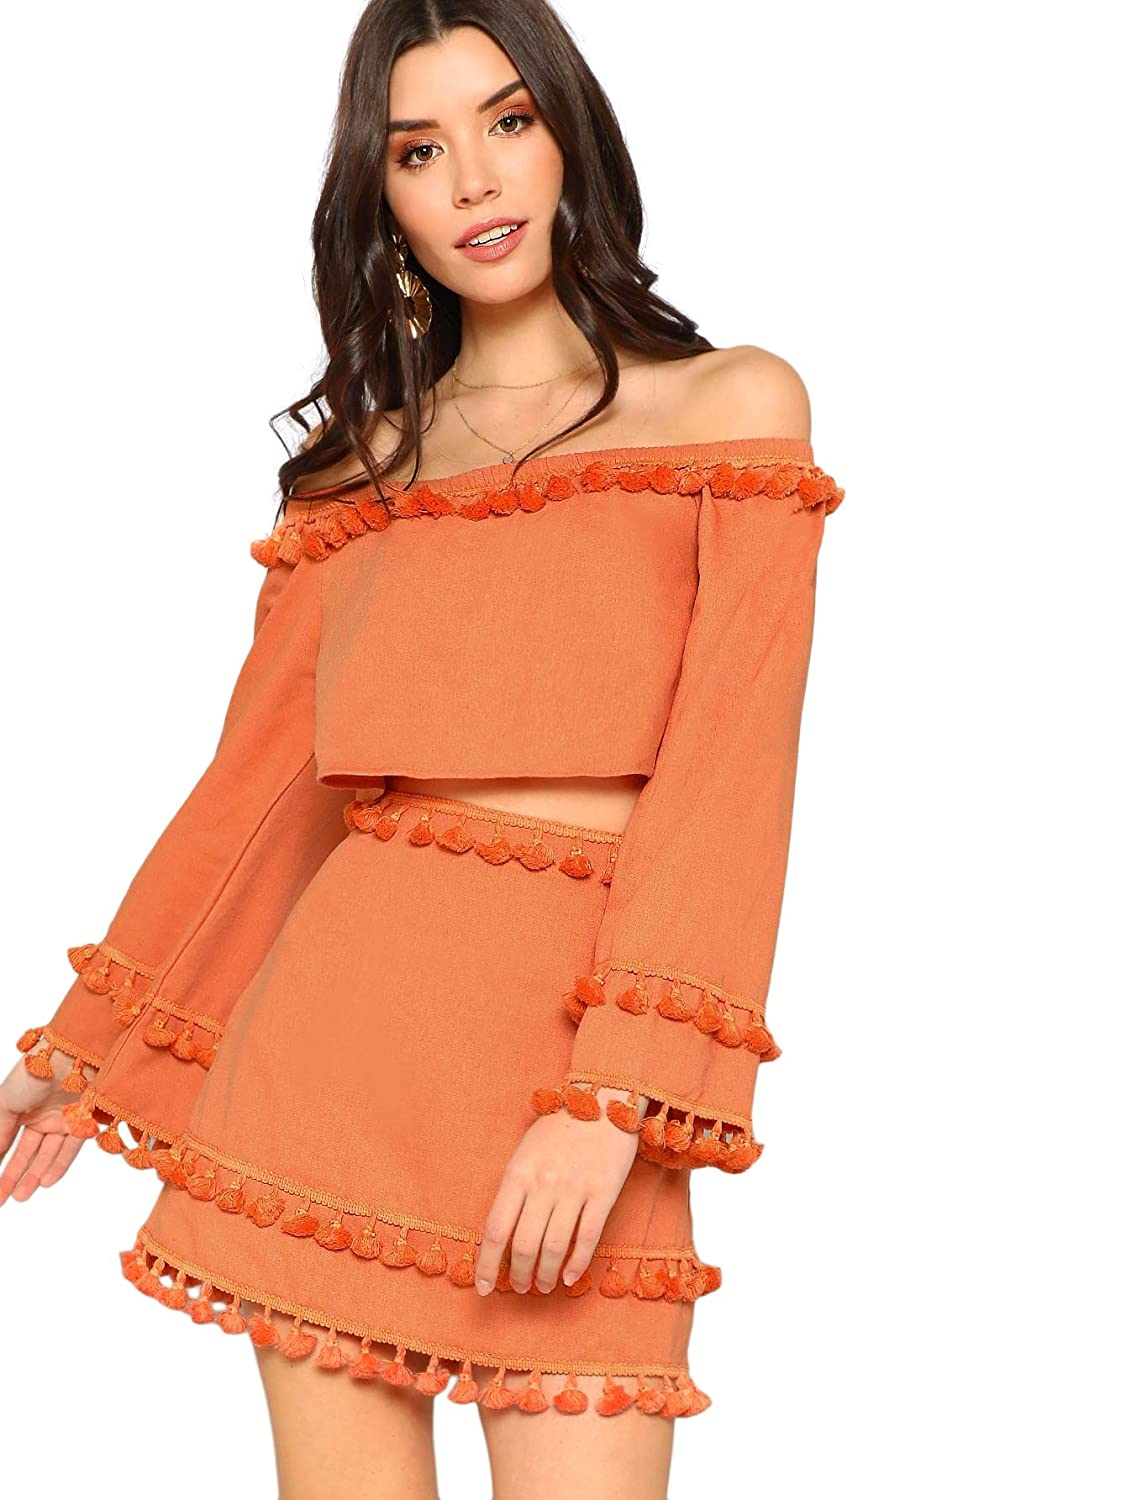 f53f785ab99b8 SheIn Women's 2 Piece Outfit Fringe Trim Crop Top Skirt Set at Amazon  Women's Clothing store: